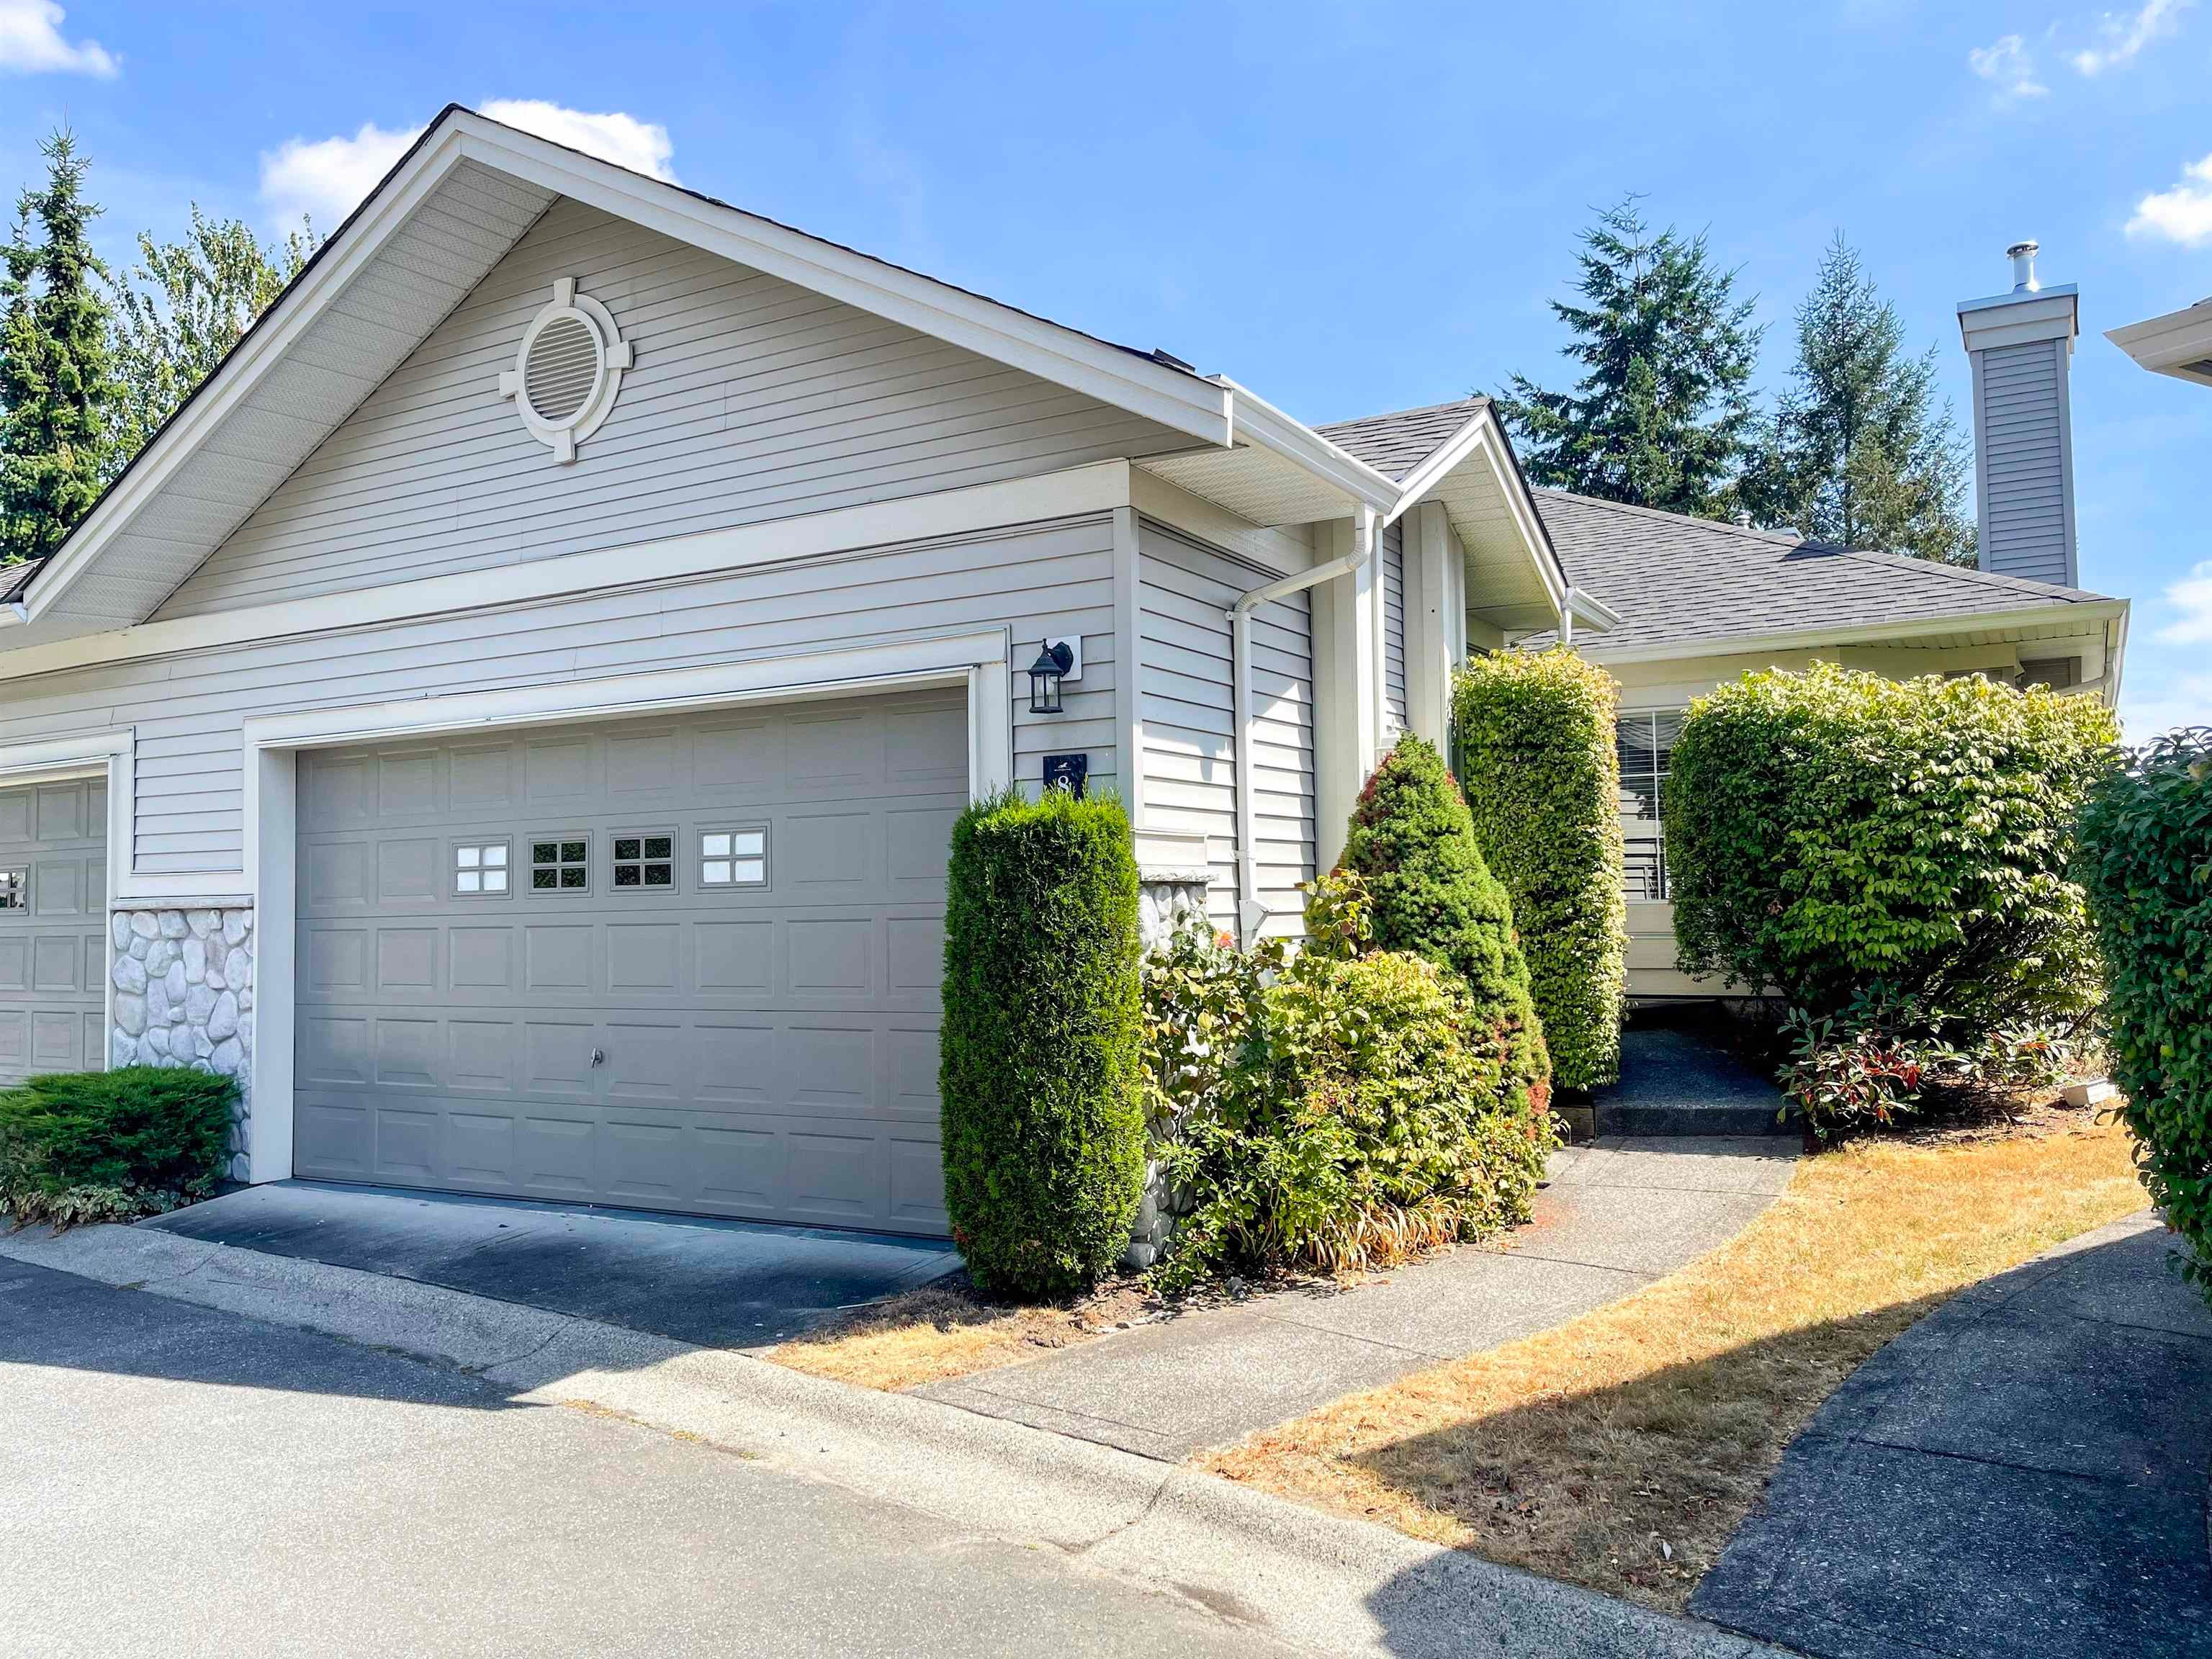 8 16888 80 AVENUE - Fleetwood Tynehead Townhouse for sale, 3 Bedrooms (R2618785)